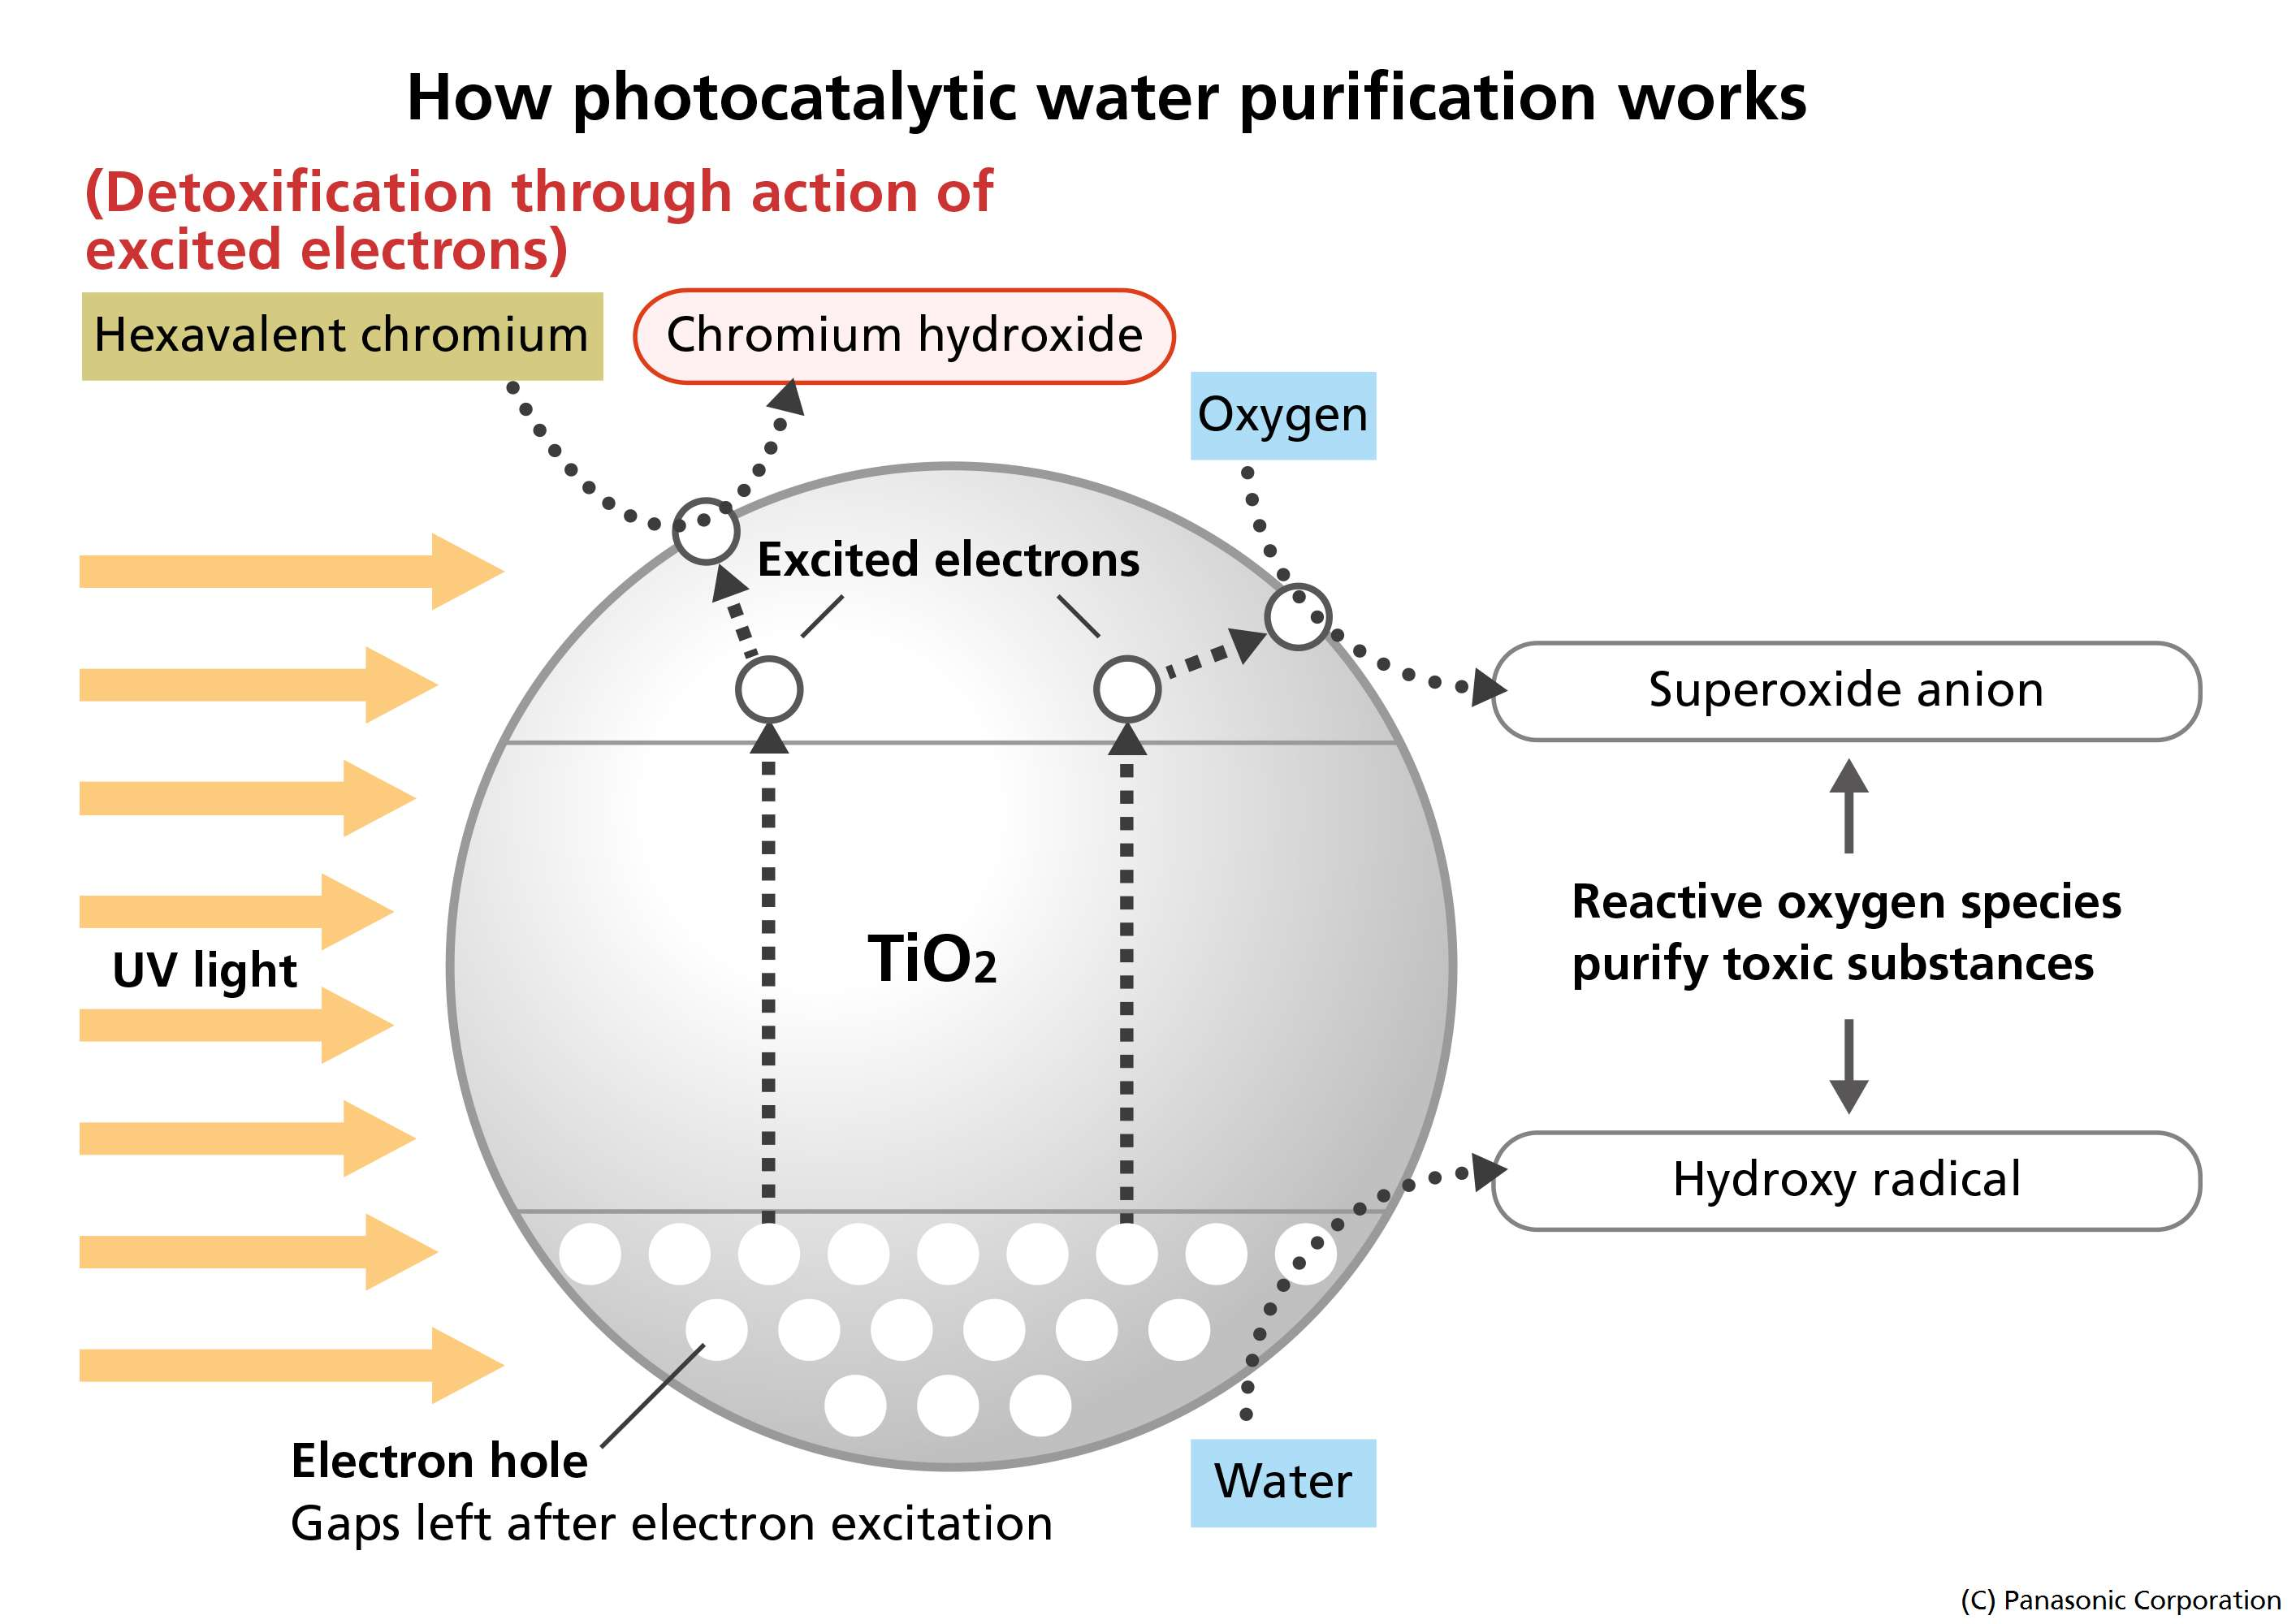 Panasonic Develops Photocatalytic Water Purification Technology Filtration Diagram Enlarge Image 03 How Works